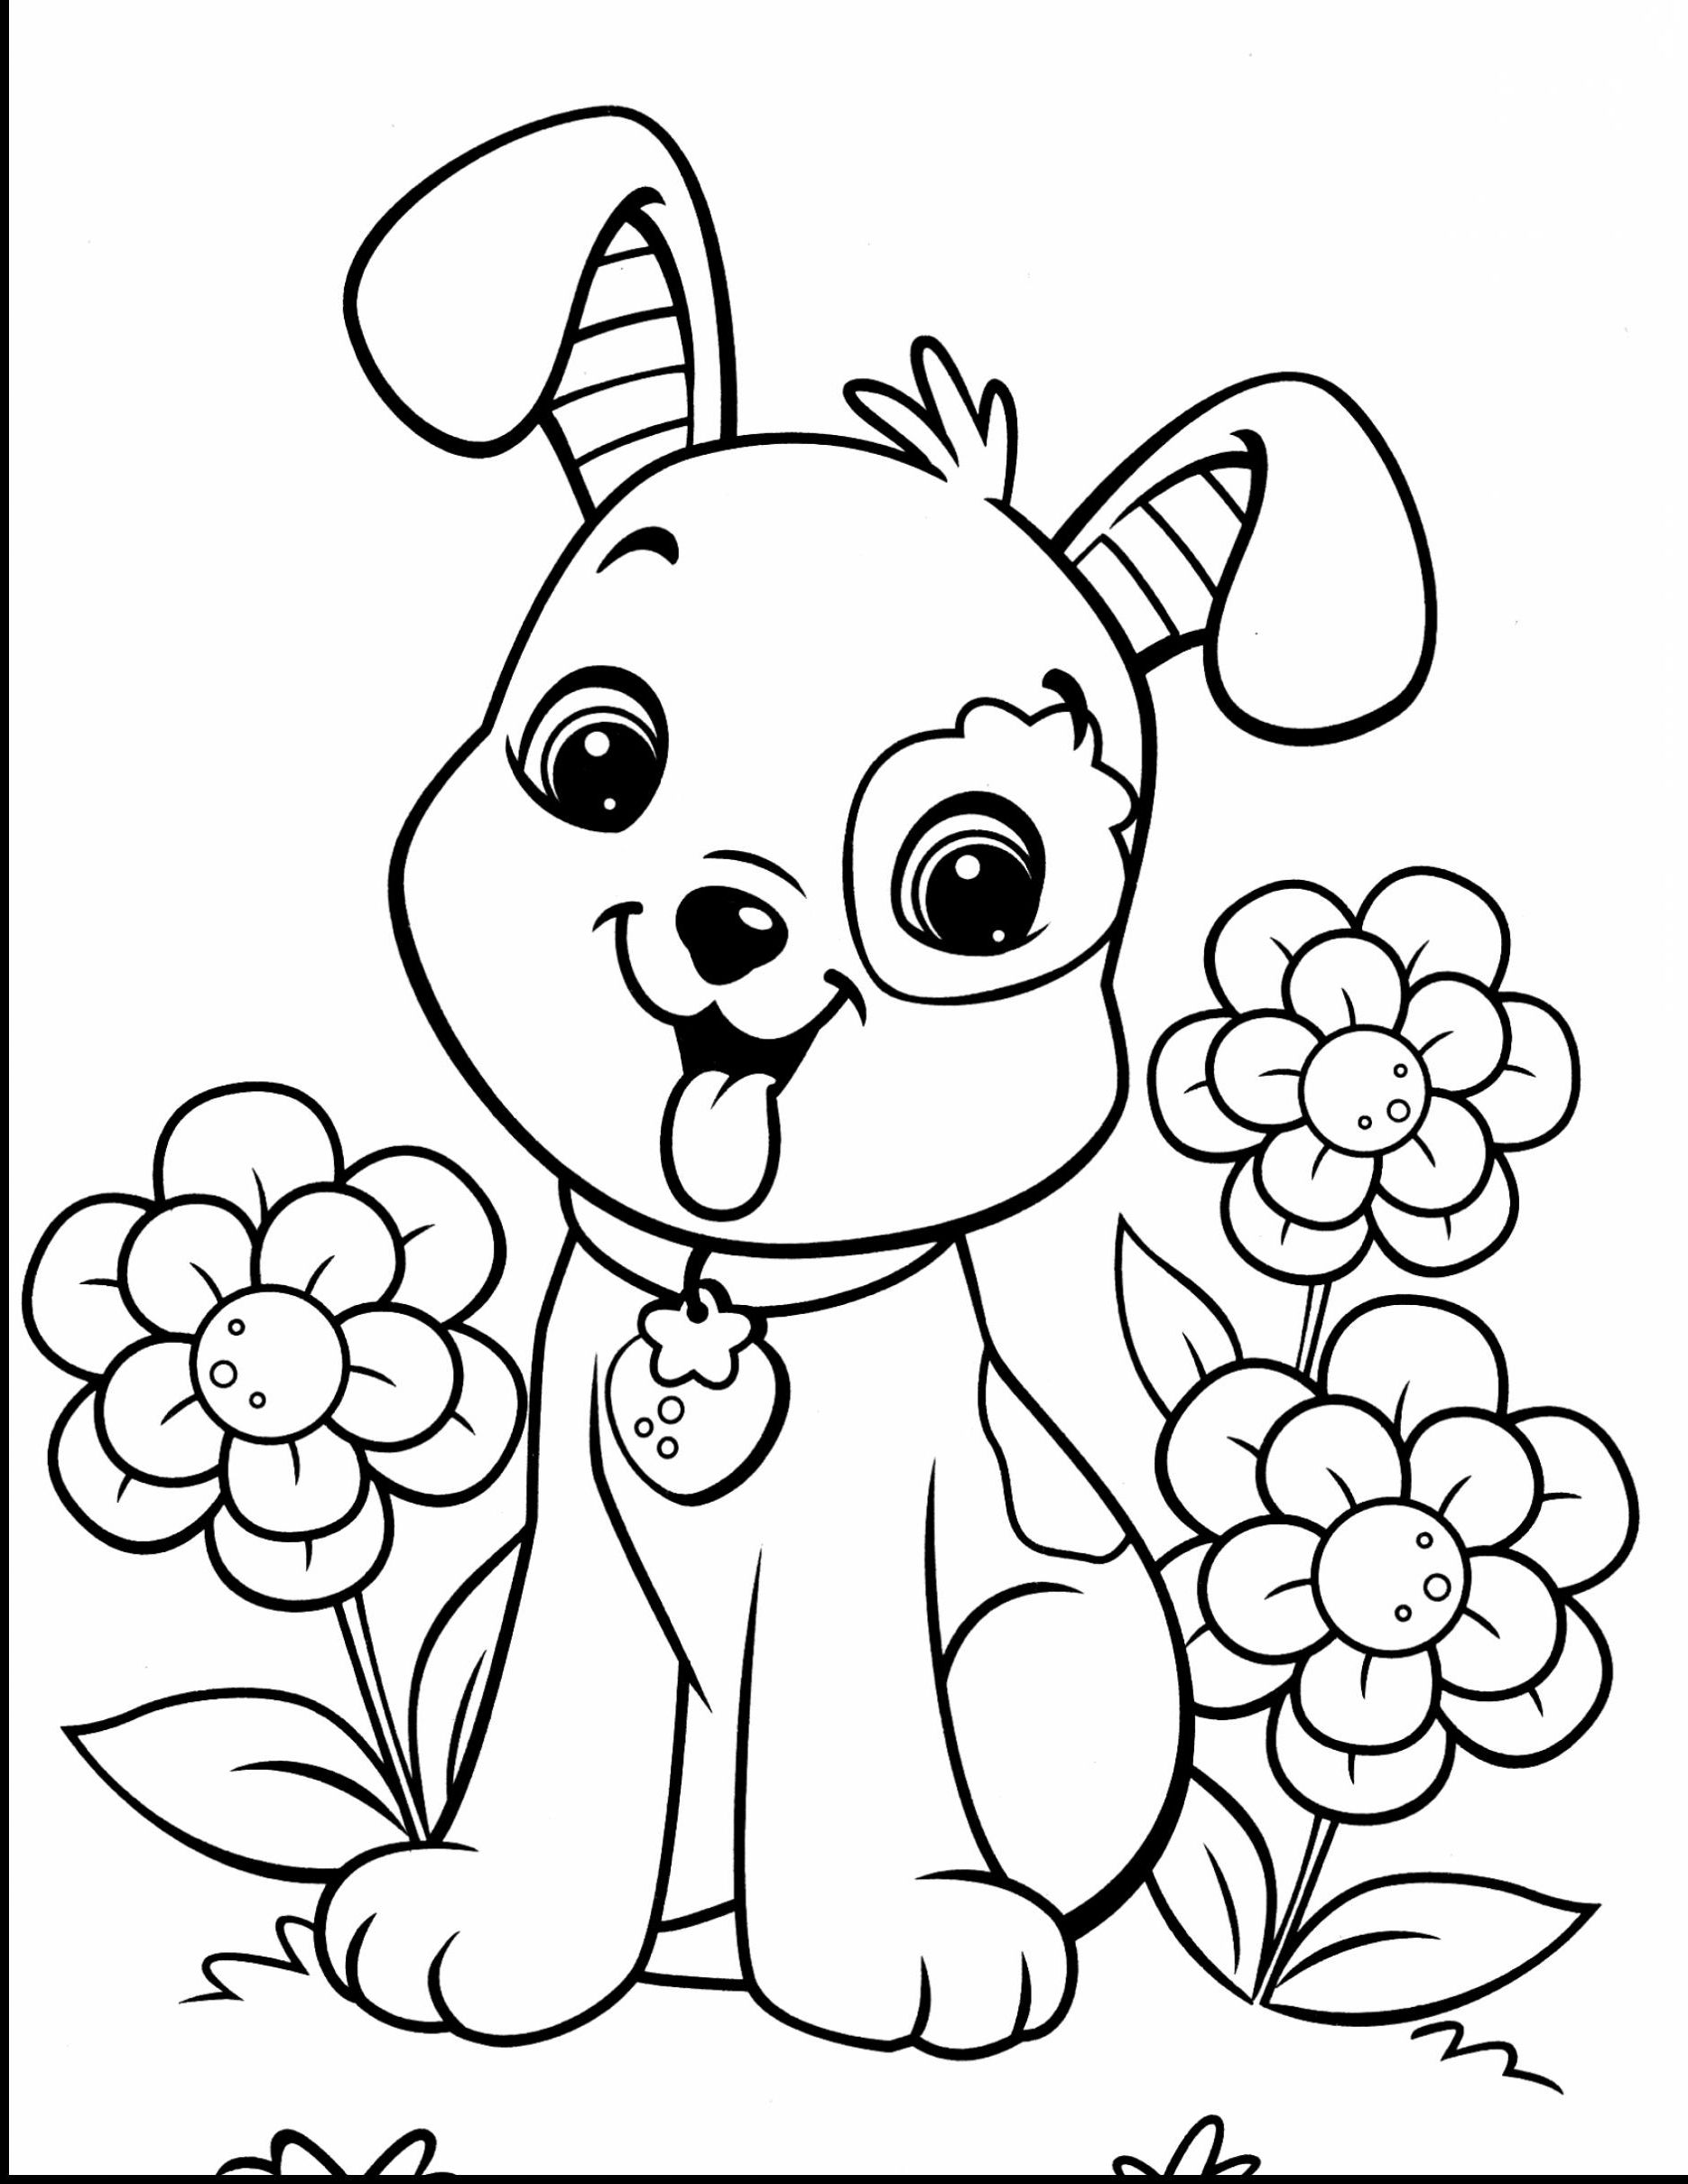 Dog Coloring Pages Puppy Coloring Pages Dog Coloring Page Cute Coloring Pages